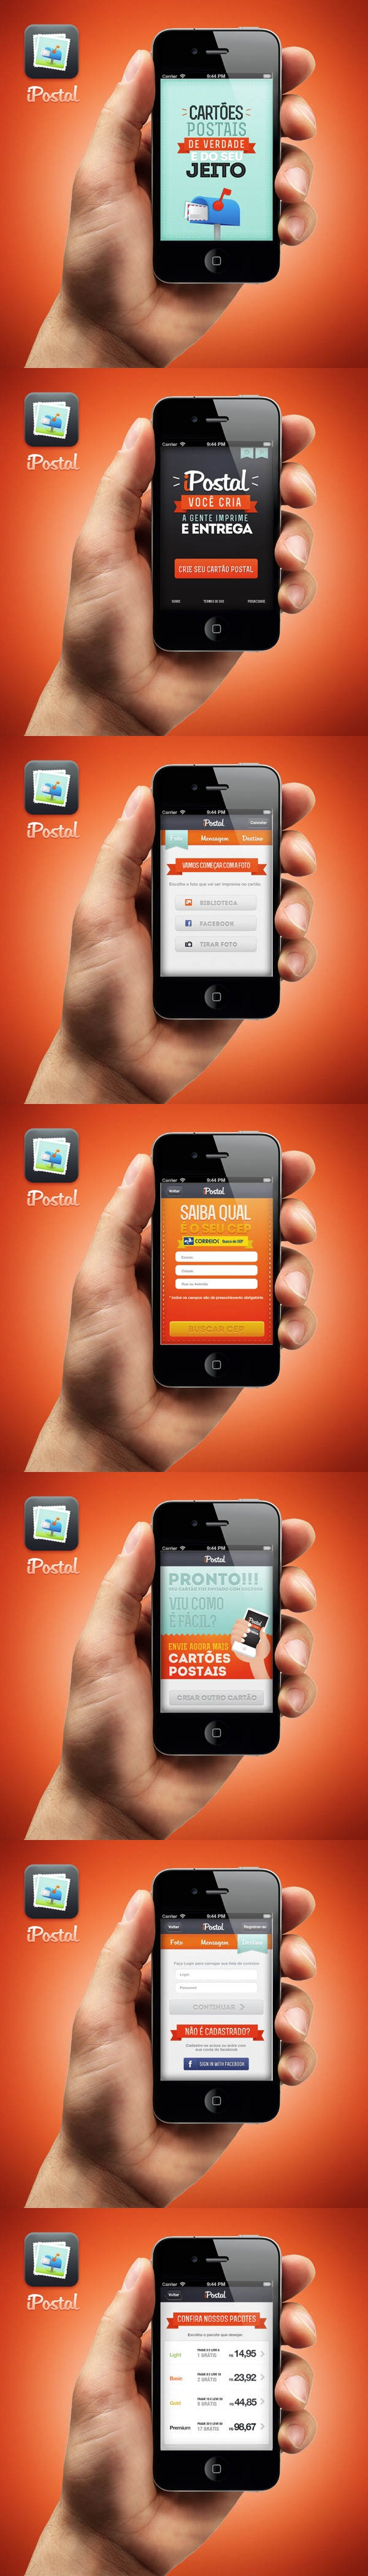 iPostal app by Leonardo Zem, via Behance